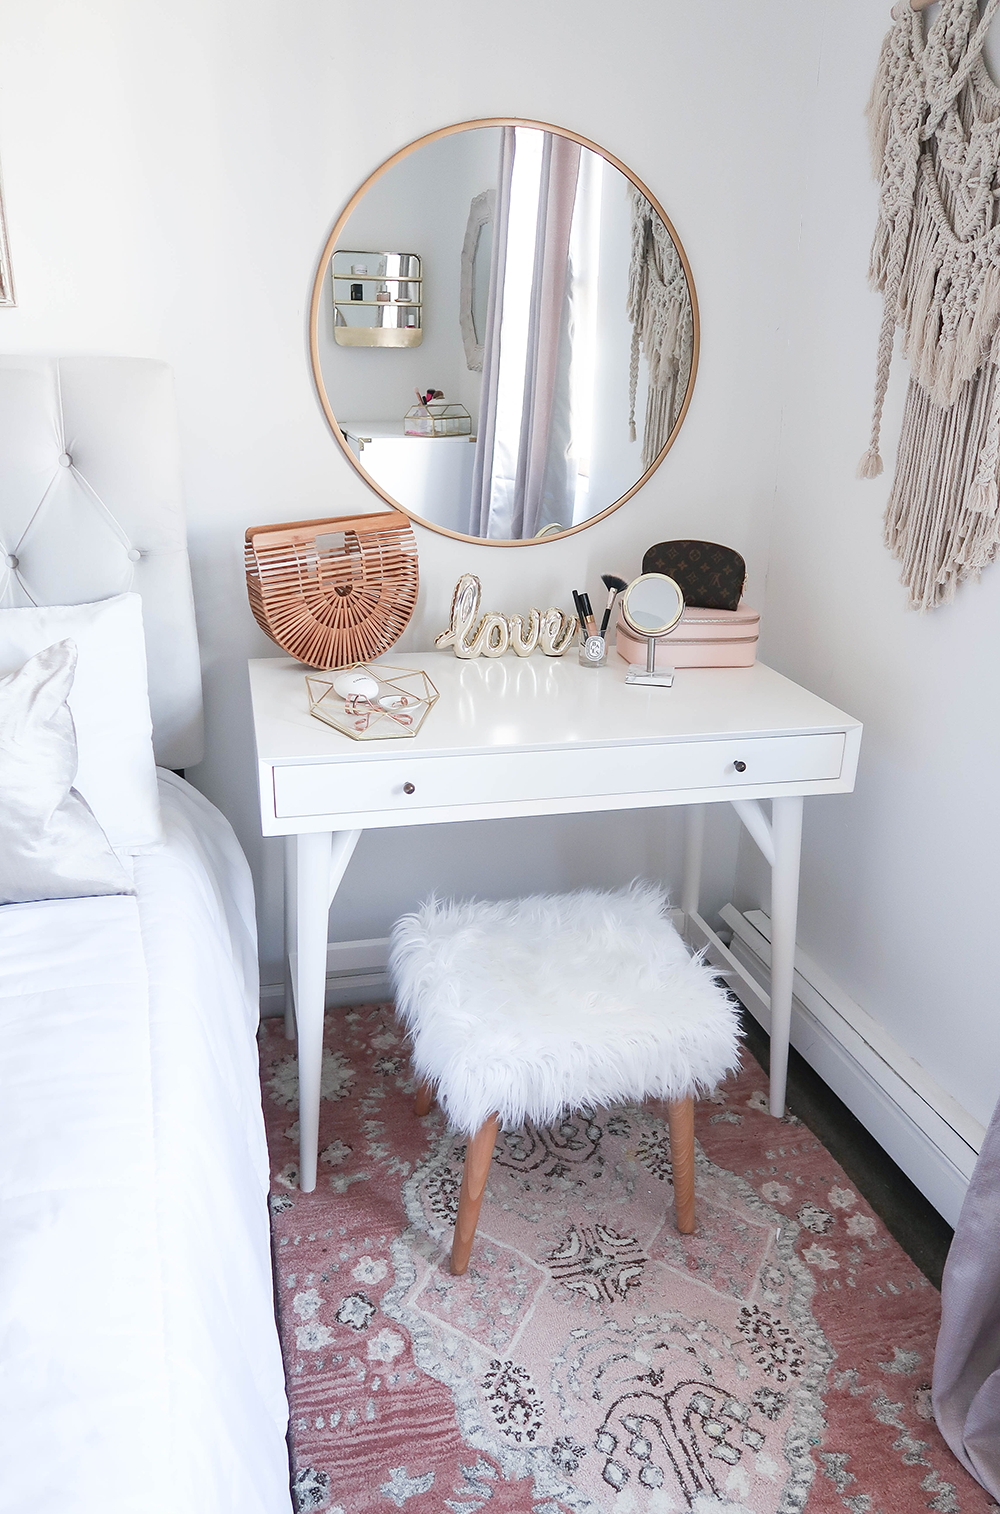 Styling A Vanity In A Small Space | 2018 | Room decor, Home ...